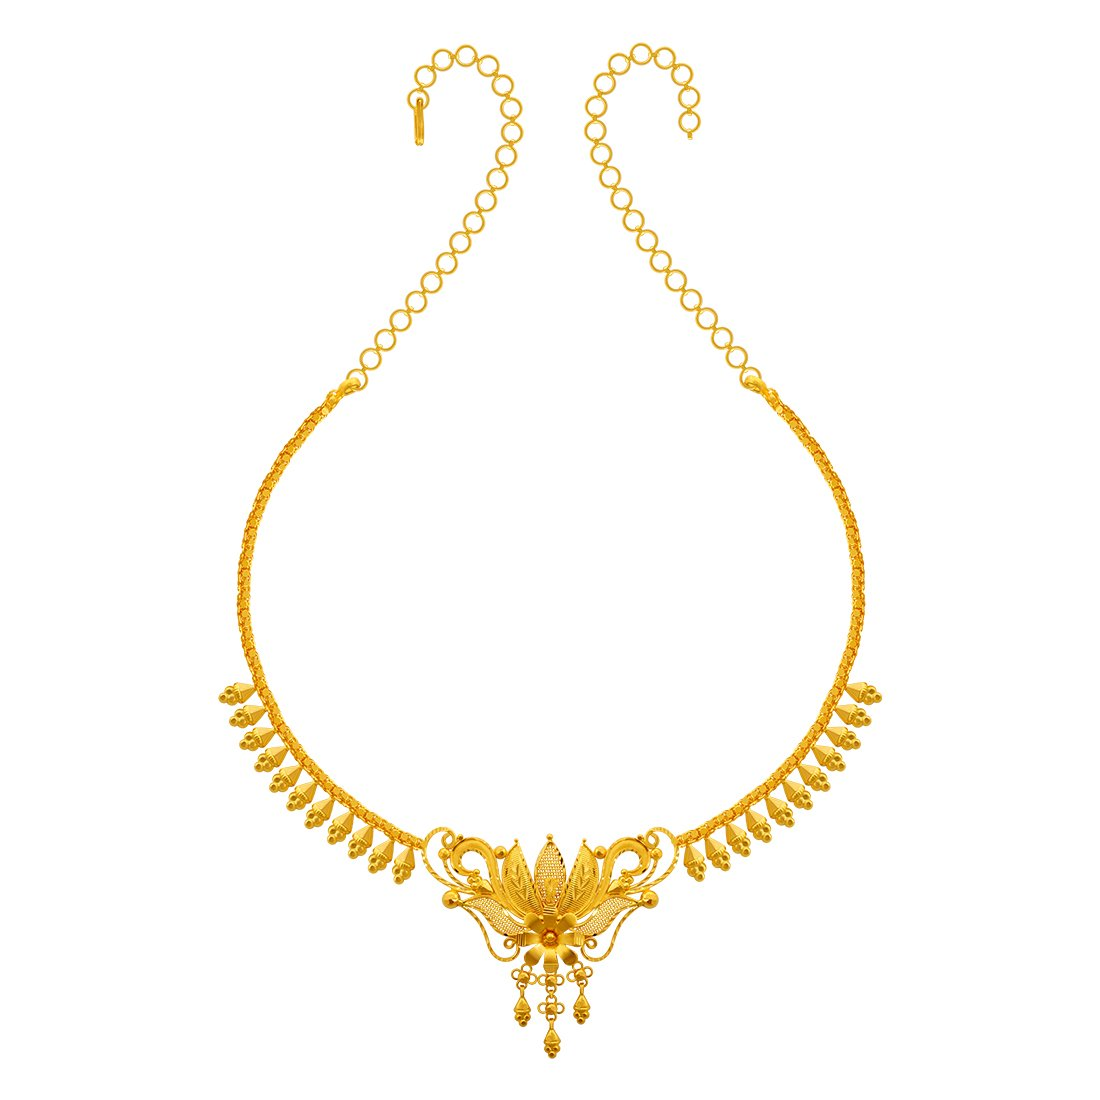 Buy P C Chandra Jewellers 22kt Yellow Gold Necklace For Women At Amazon In